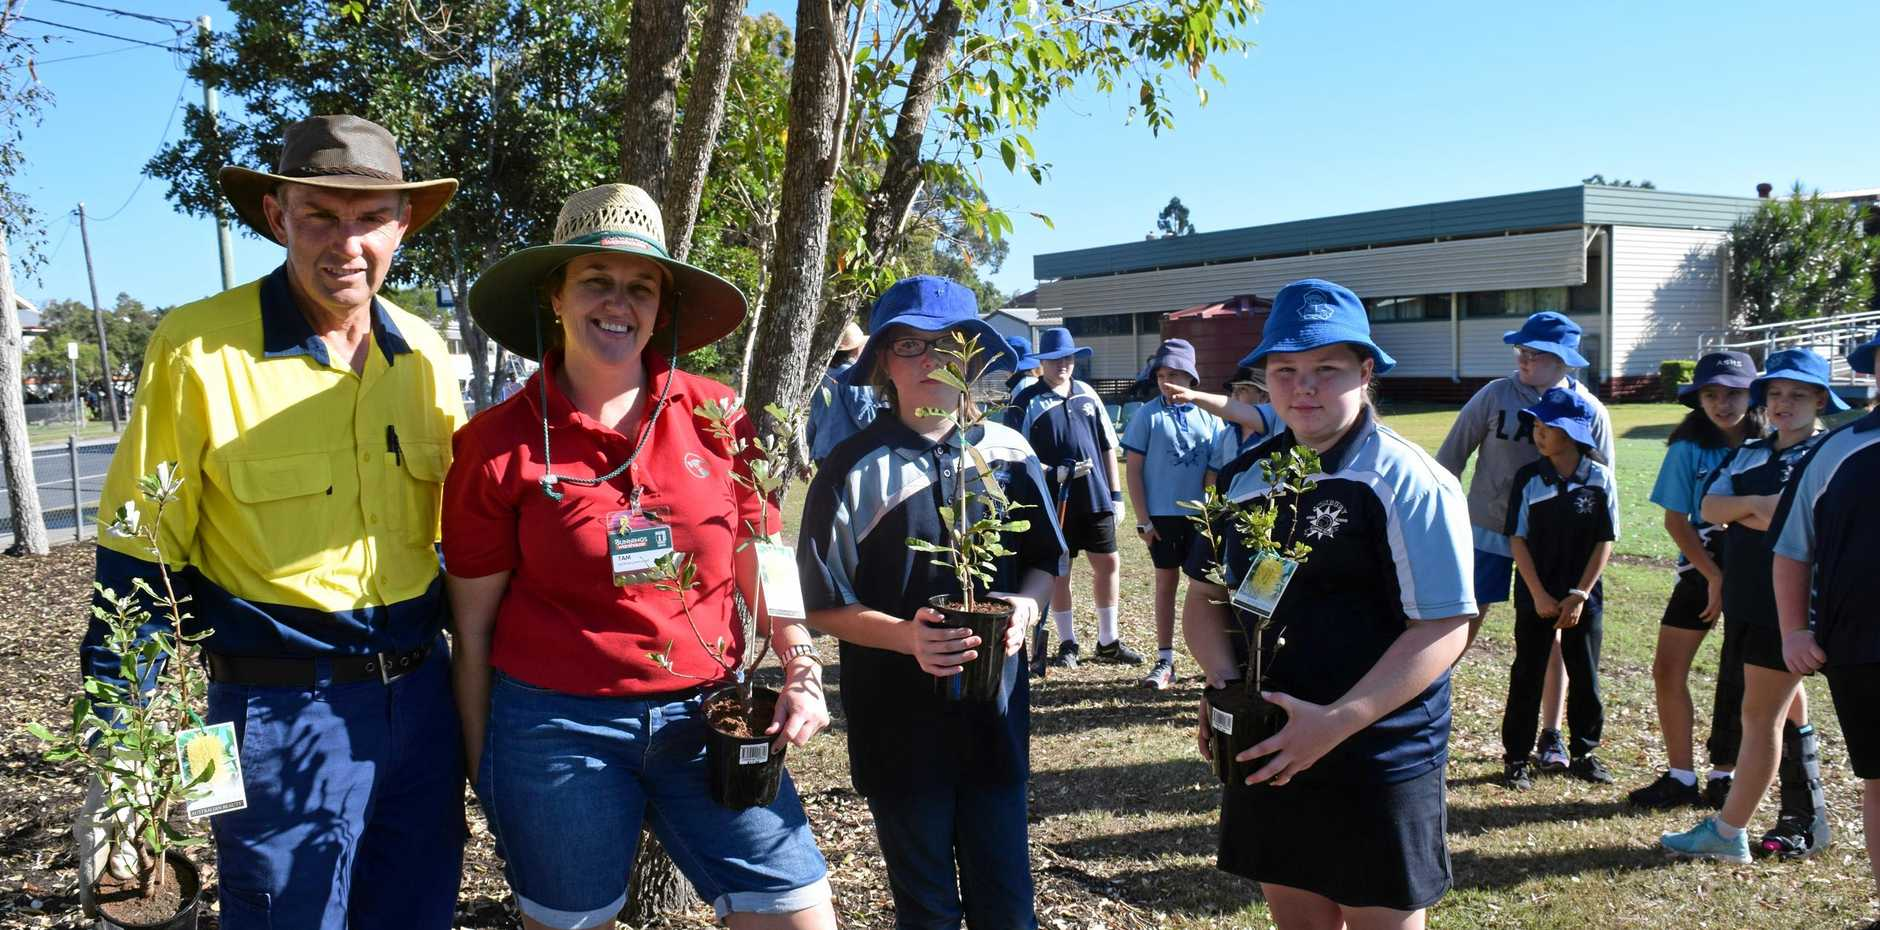 Sunbury School facility officer Bryson Jones, Bunnings activities co-ordinator, student leaders Ellie McLeod and Kiara Bettles with a selection of native plants for School's Tree Day.